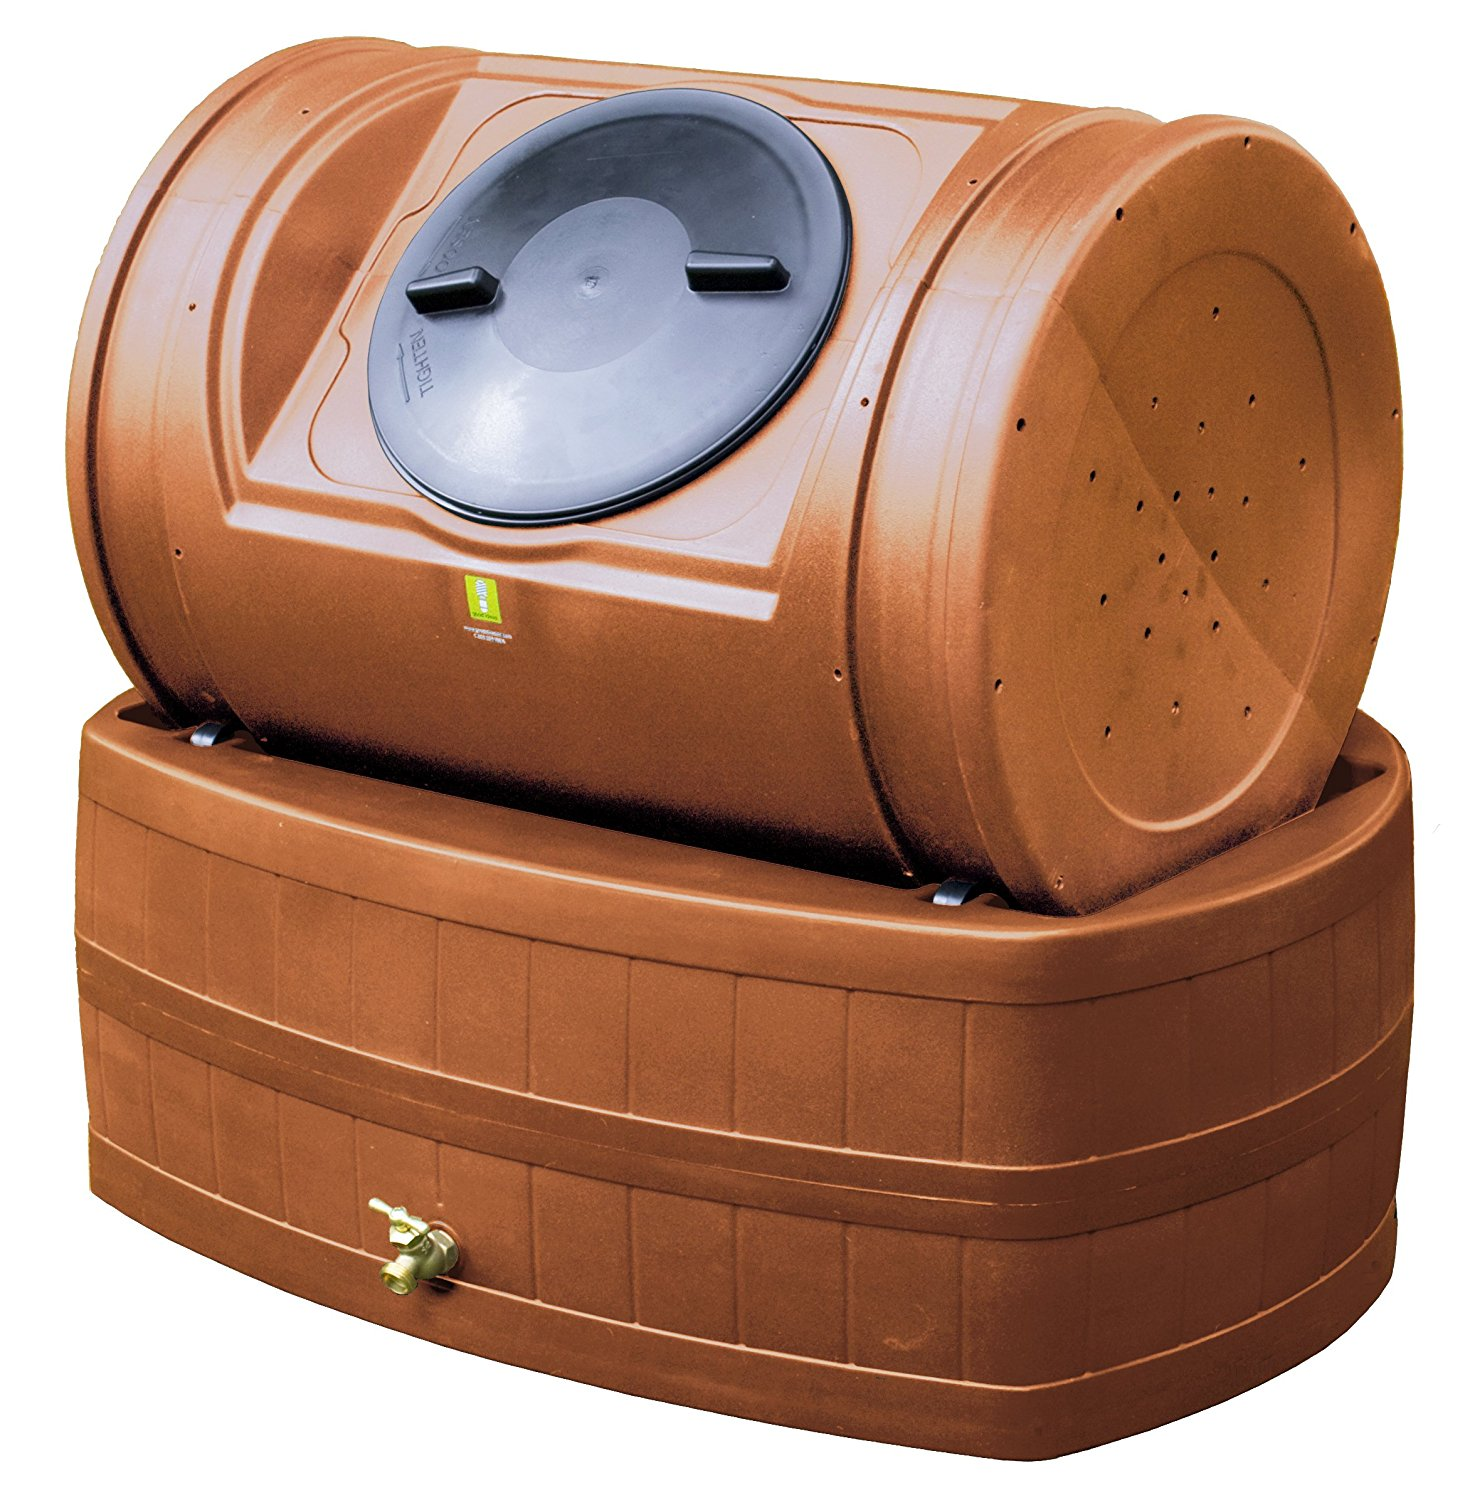 Compost Wizard Hybrid Bin Terra Cotta by